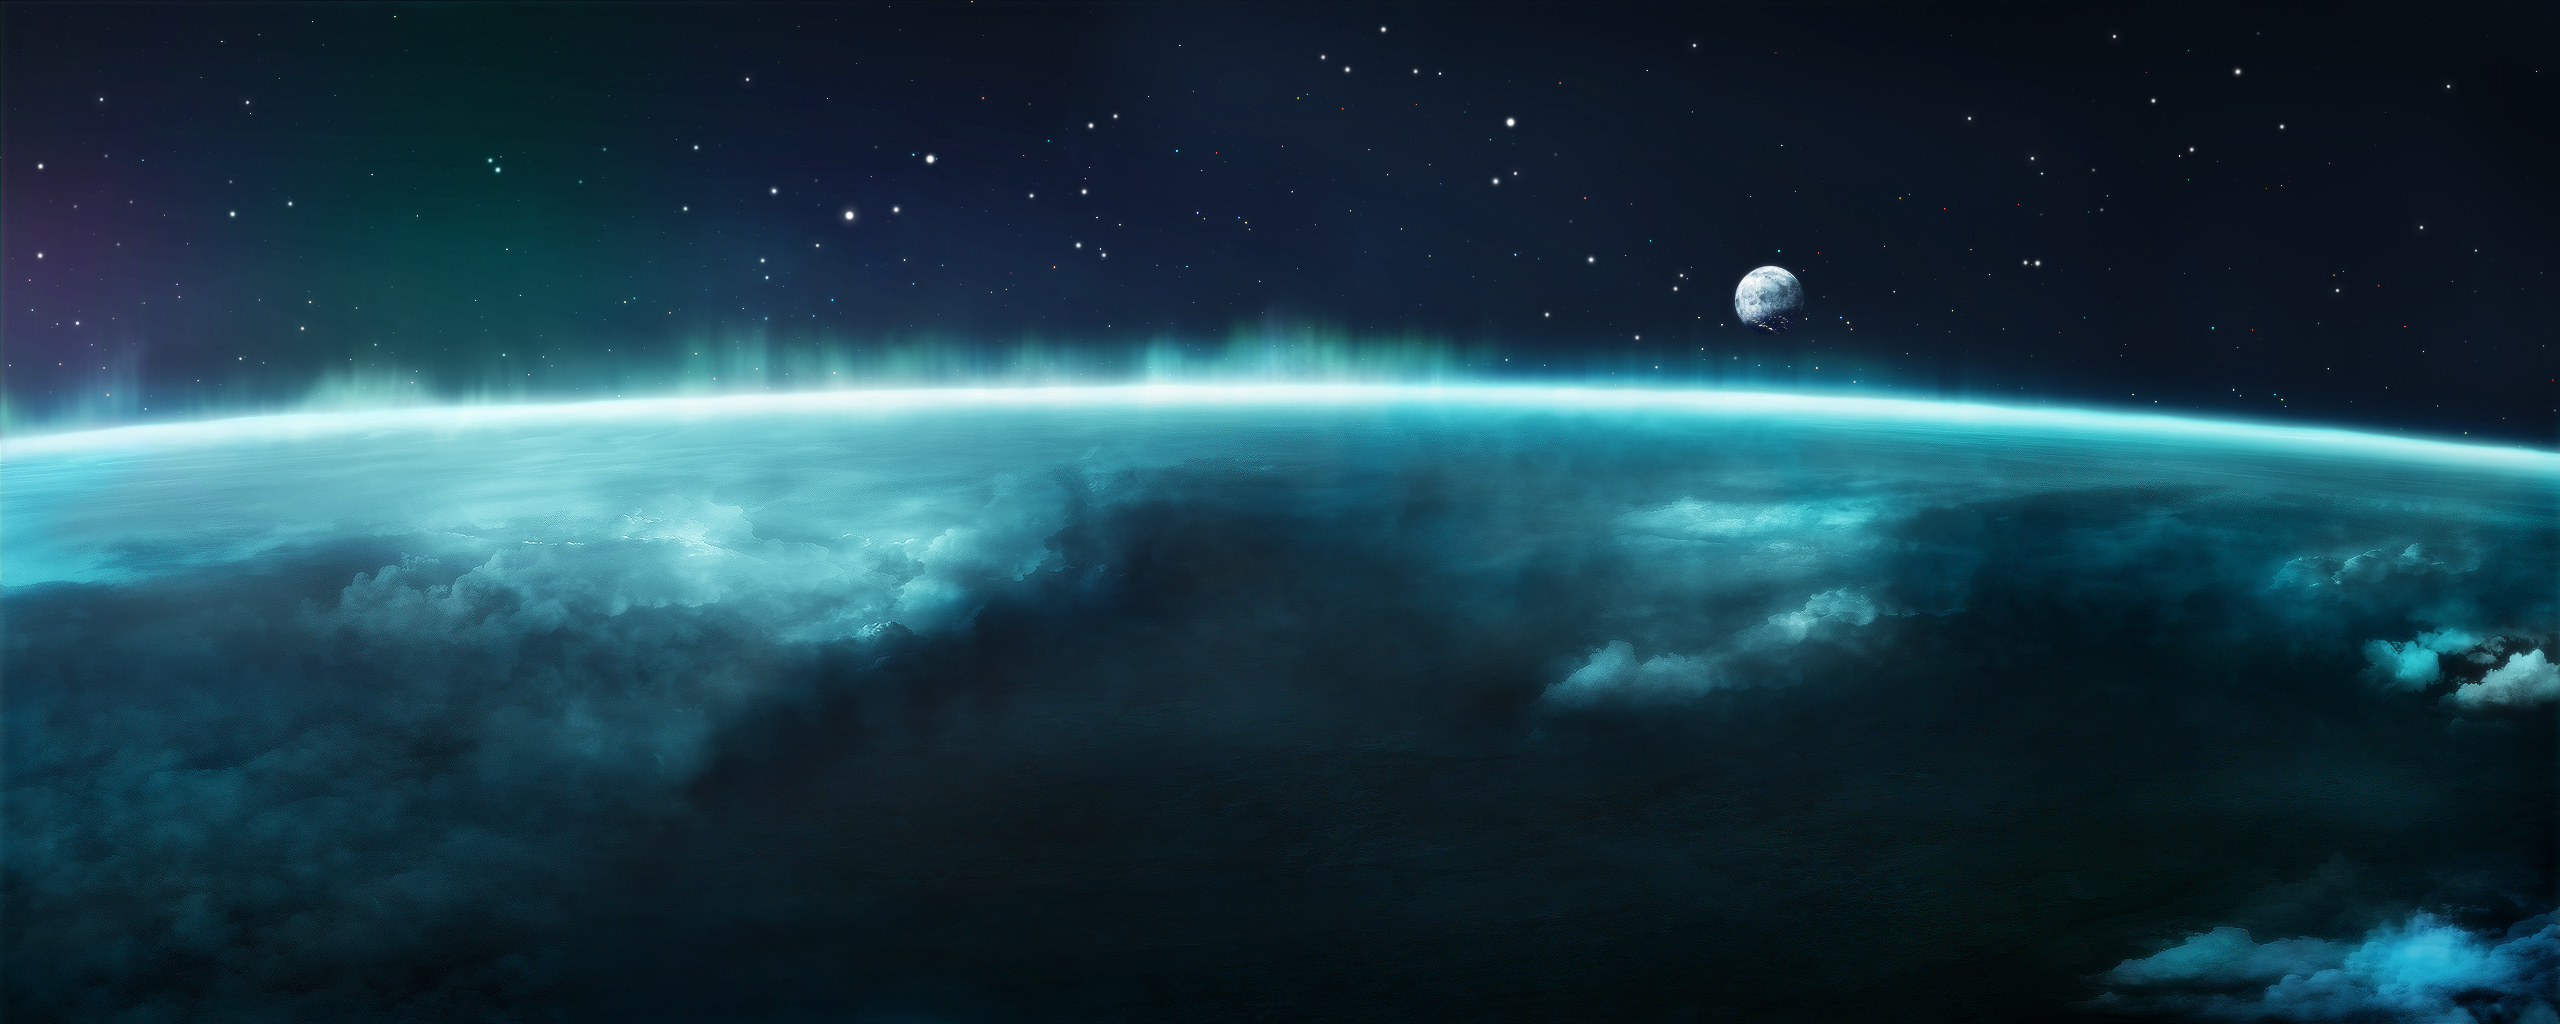 Awesome Sci Fi Wallpaper 2560x1024px